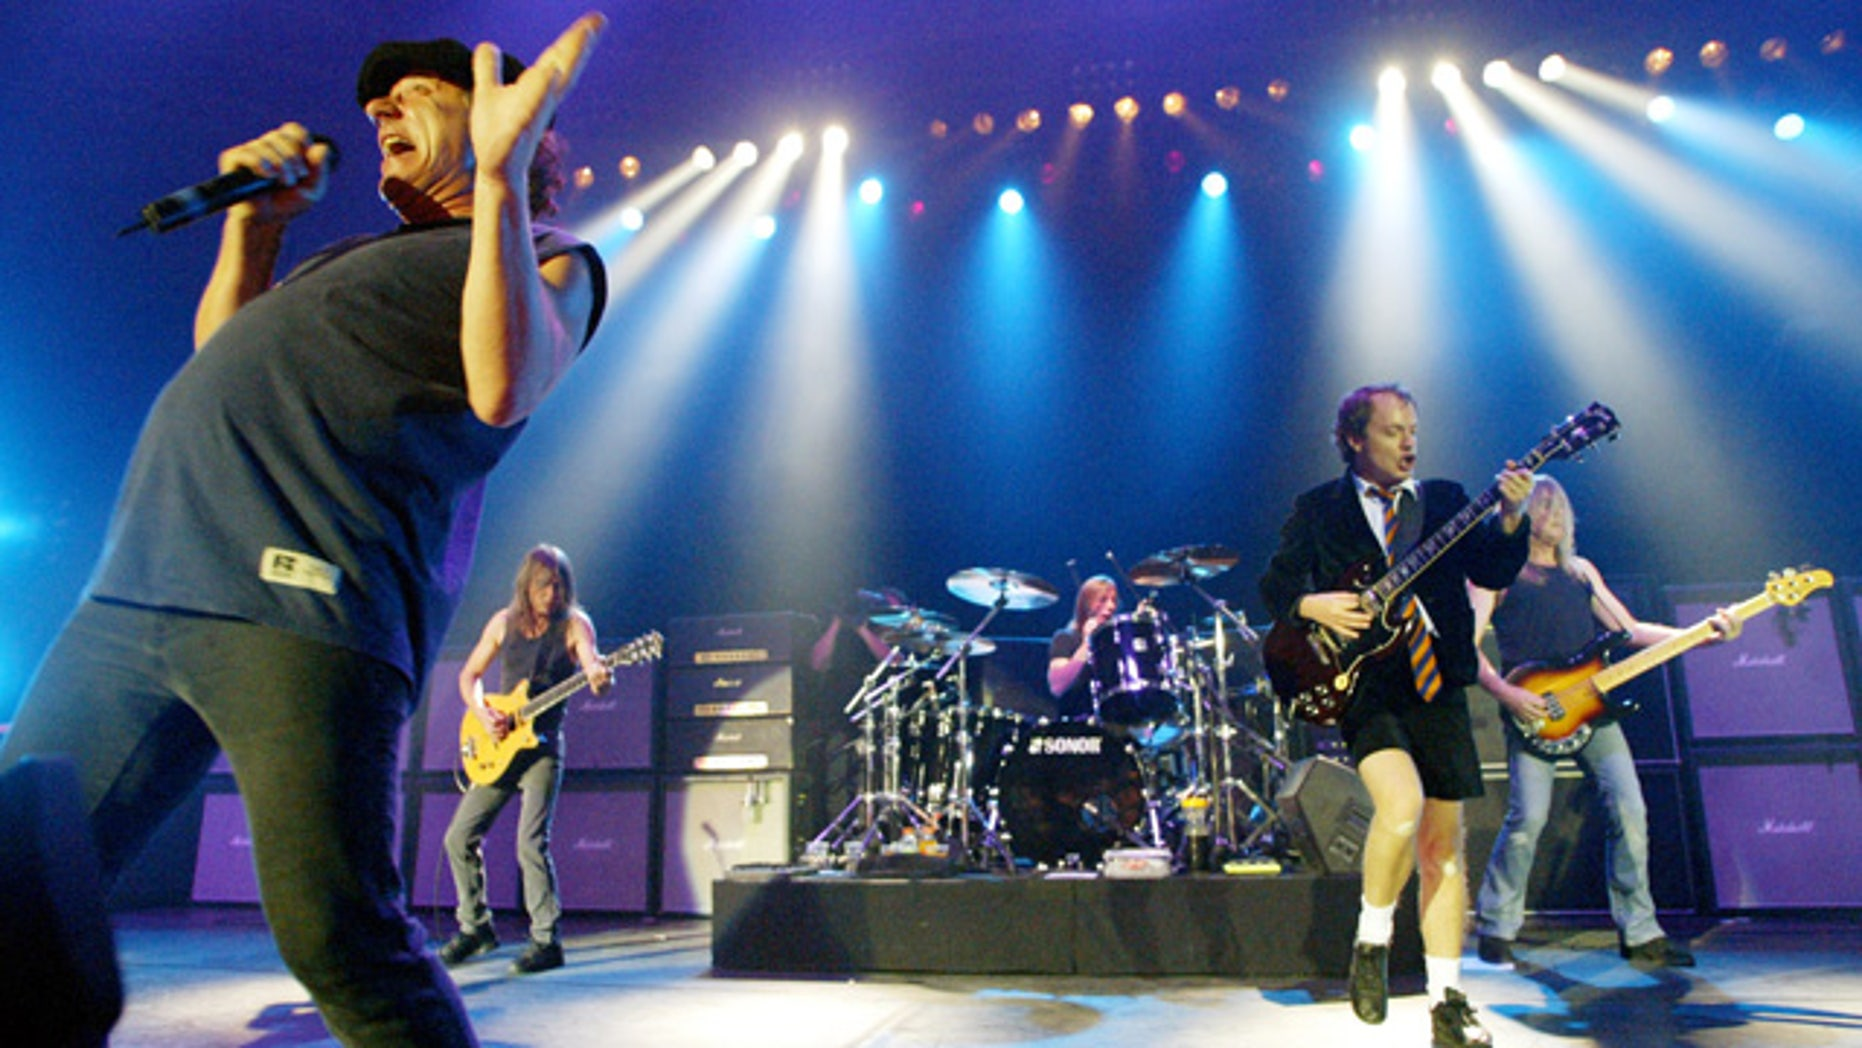 FILE - This June 17, 2003 file photo shows British rock band AC/DC, from left, Brian Johnson, Malcolm Young, Phil Rudd, Angus Young, and Cliff Williams performing on stage during a concert in Munich, southern Germany. Malcolm Young of AC/DC is taking a break from the band to focus on his health. (AP Photo/Jan Pitman, File)